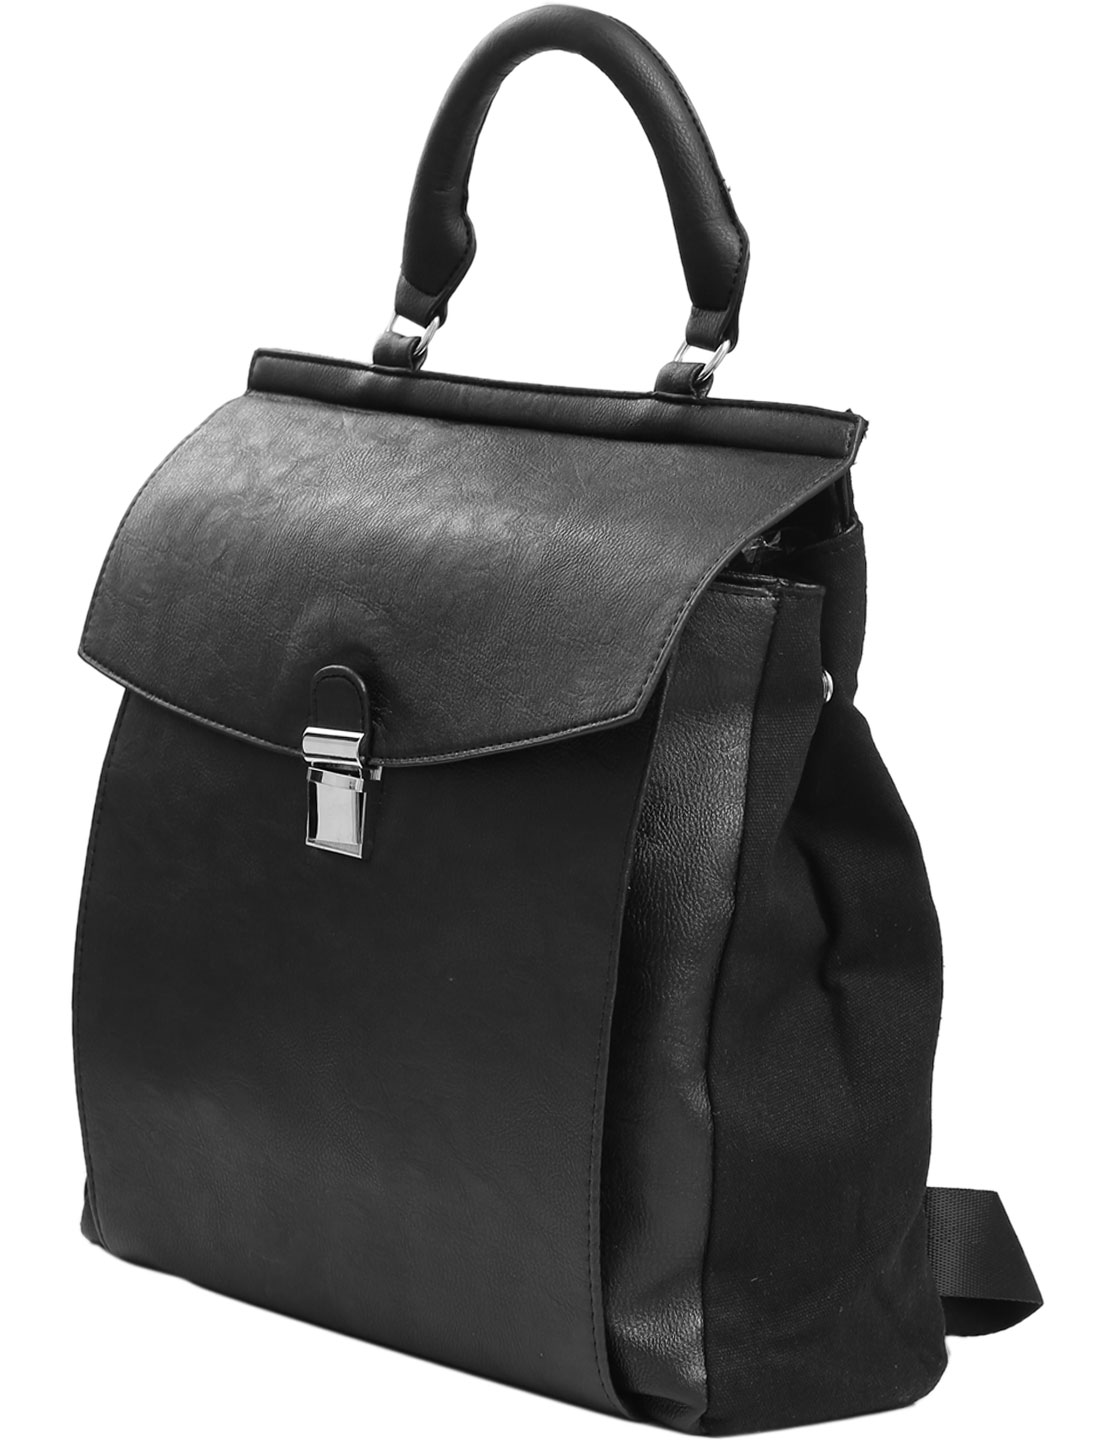 Men's Push Lock Closure Imitation Leather Backpack Black